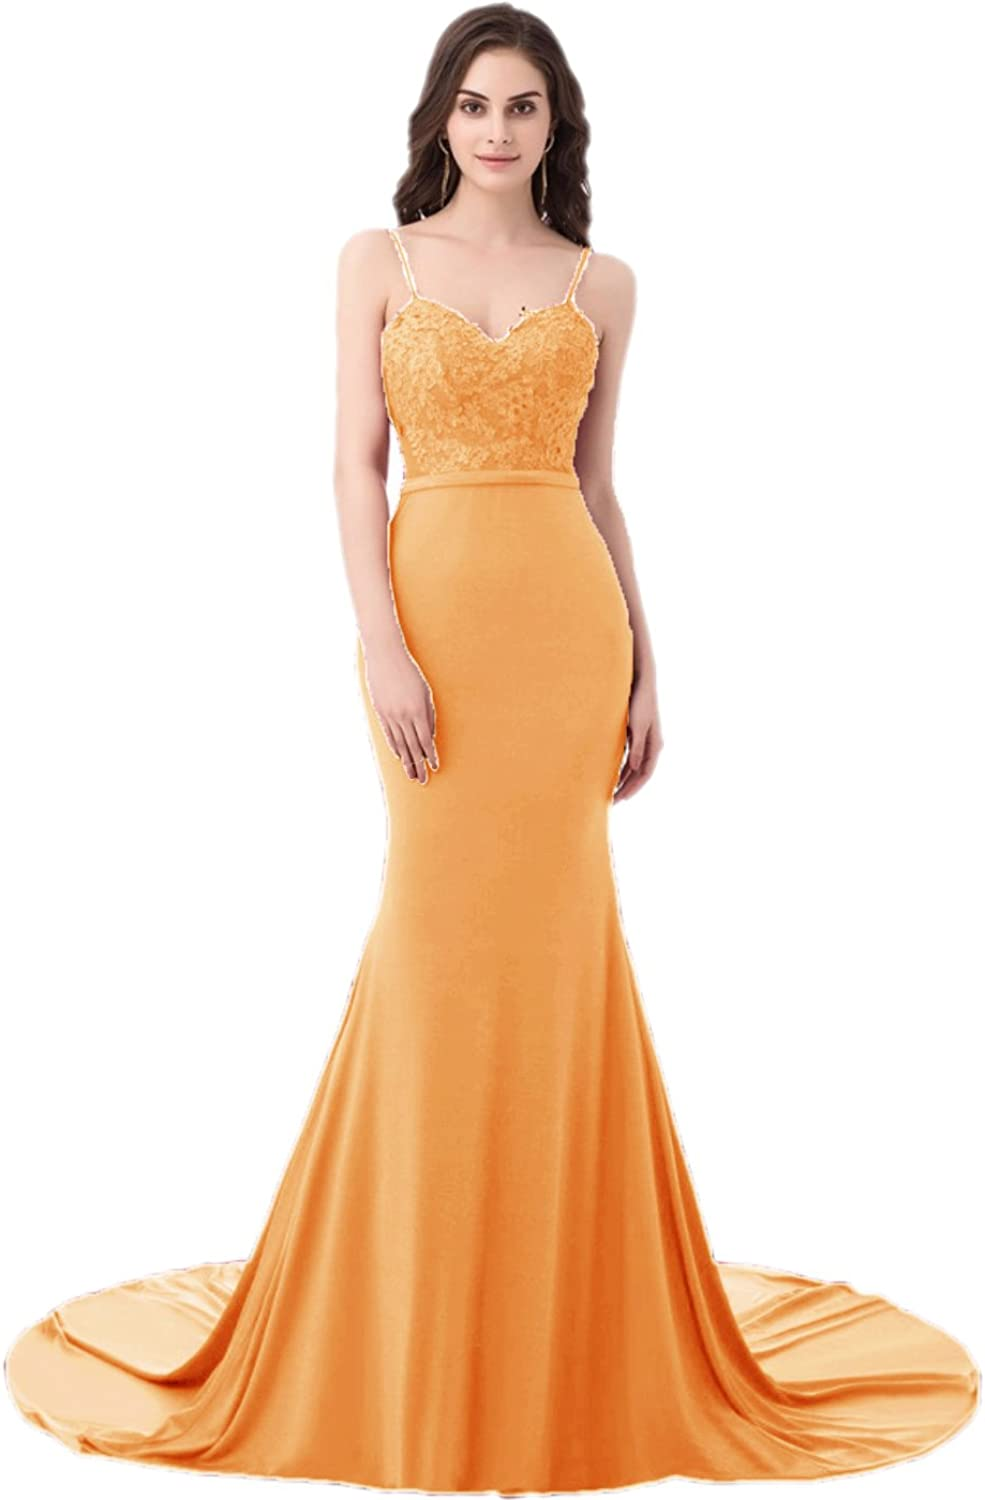 APXPF Women's Long Mermaid Prom Dress Spaghetti Strap Evening Party Gown